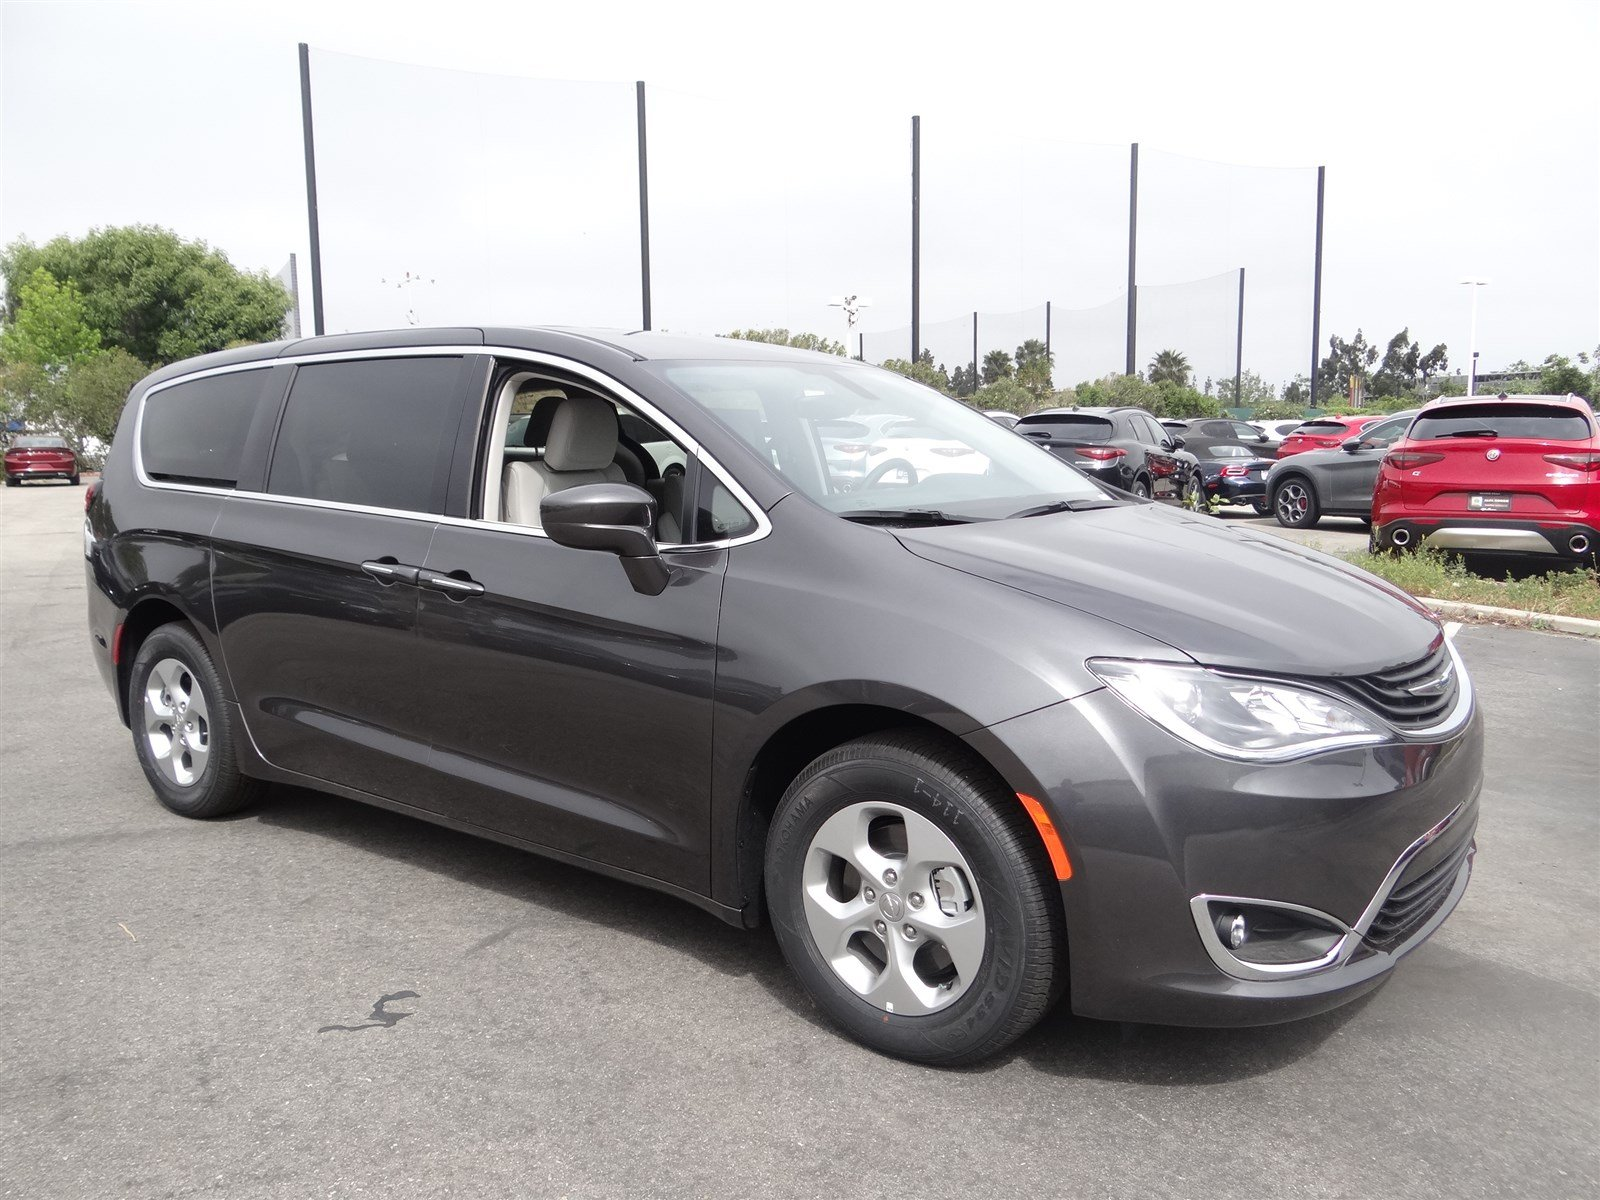 limited chrysler hybrid review van test pacifica of drive expert